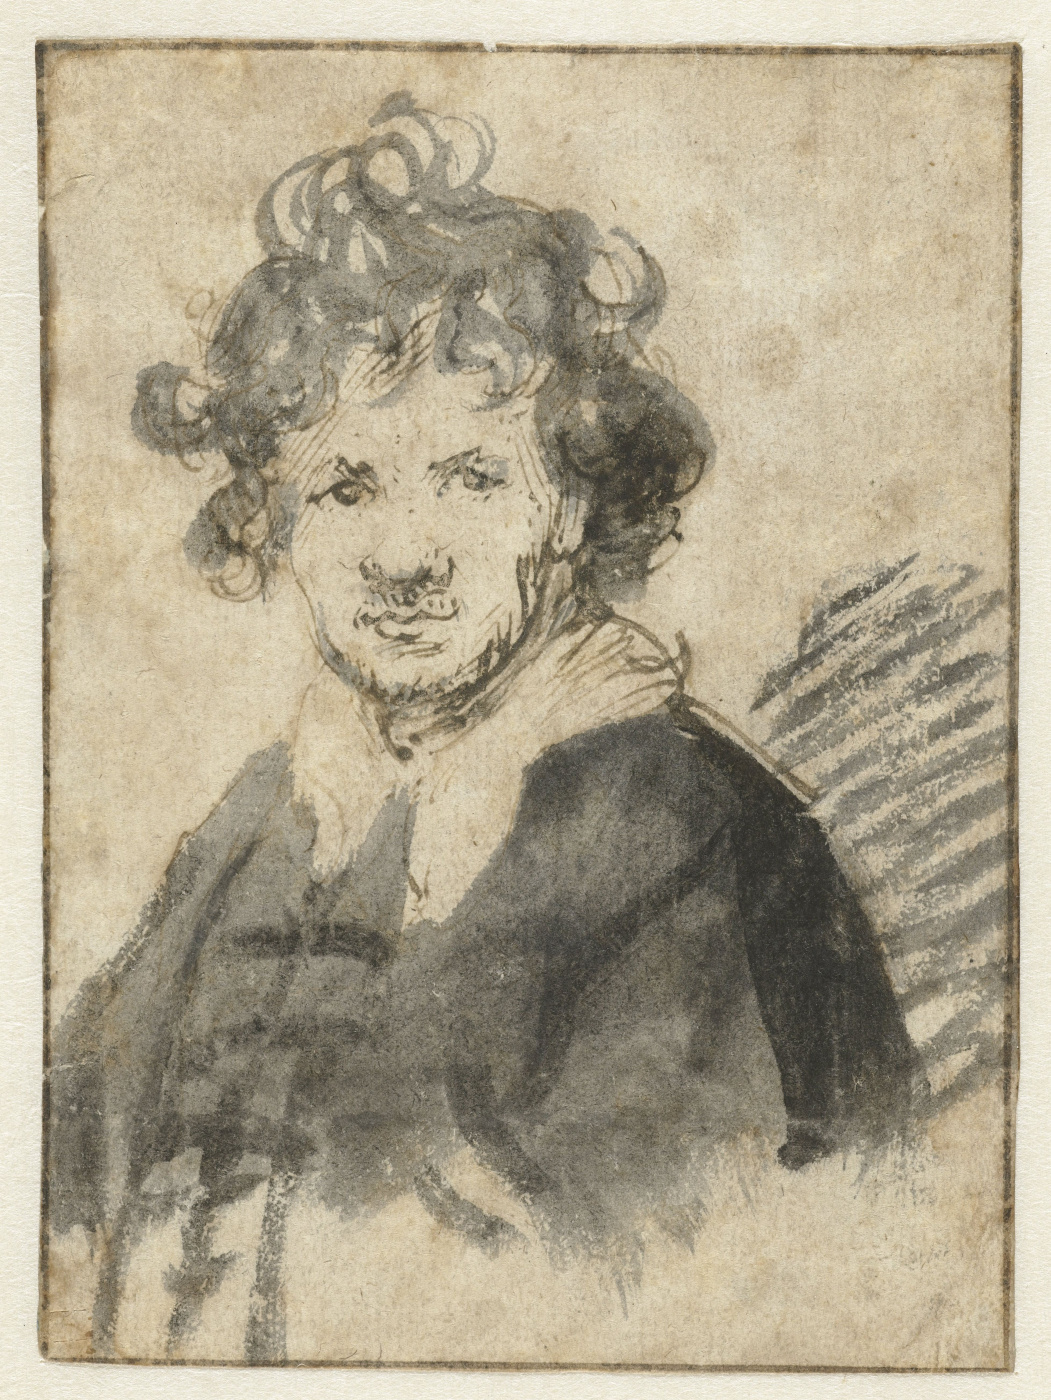 Rembrandt Harmenszoon van Rijn. Self portrait with tousled hair